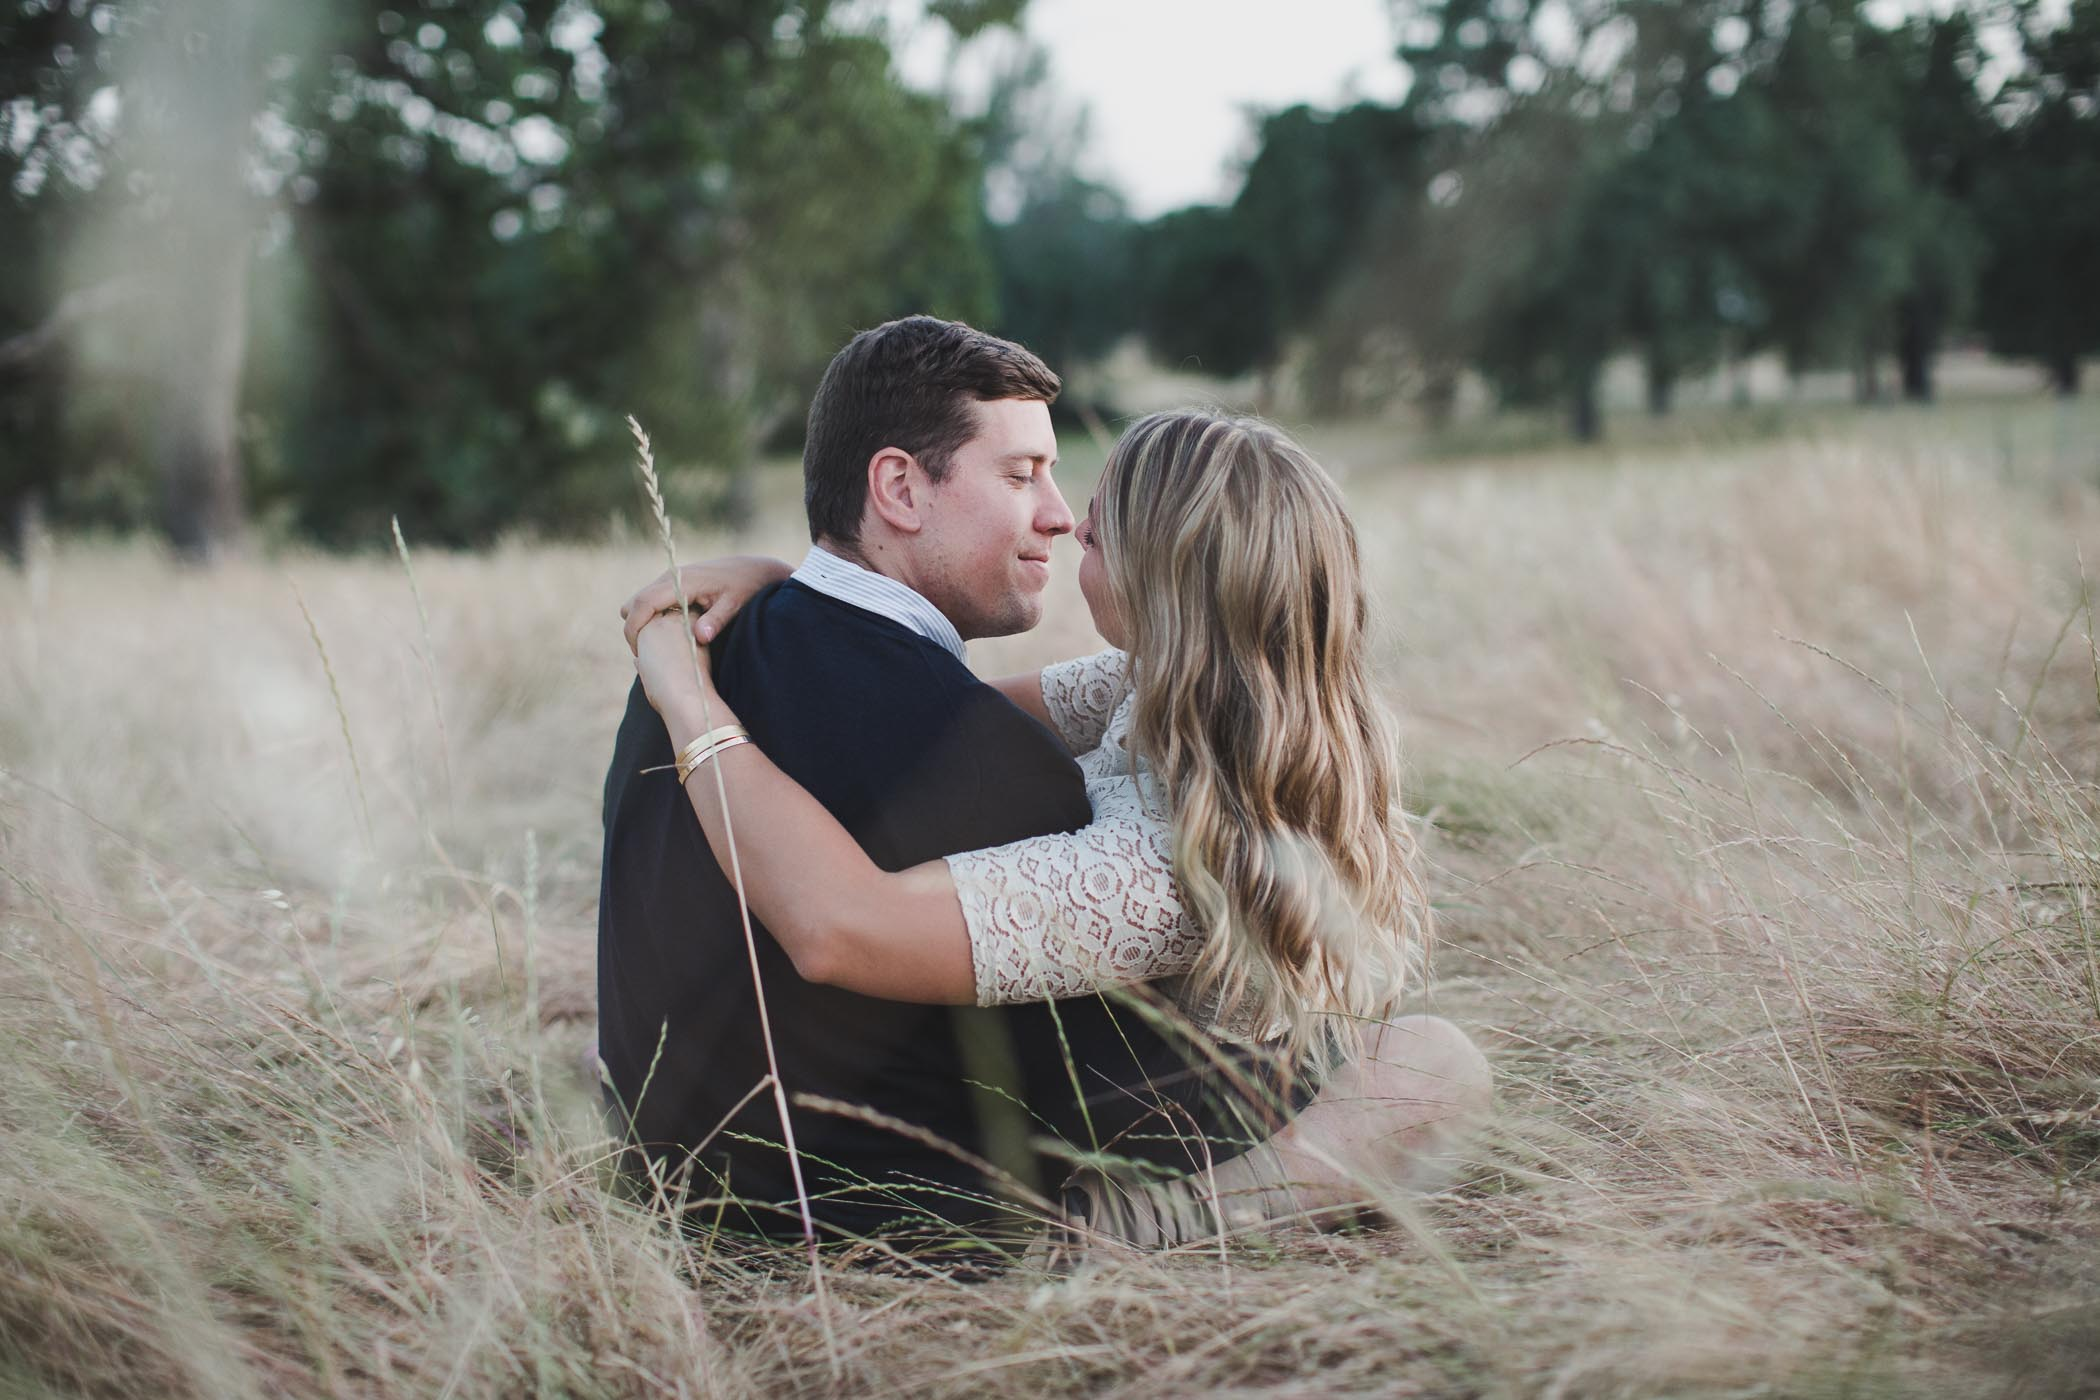 AVH_Photography_upper_bidwell_park_engagement_photography_chico_california_spring_bidwell_golf_course_0061.jpg